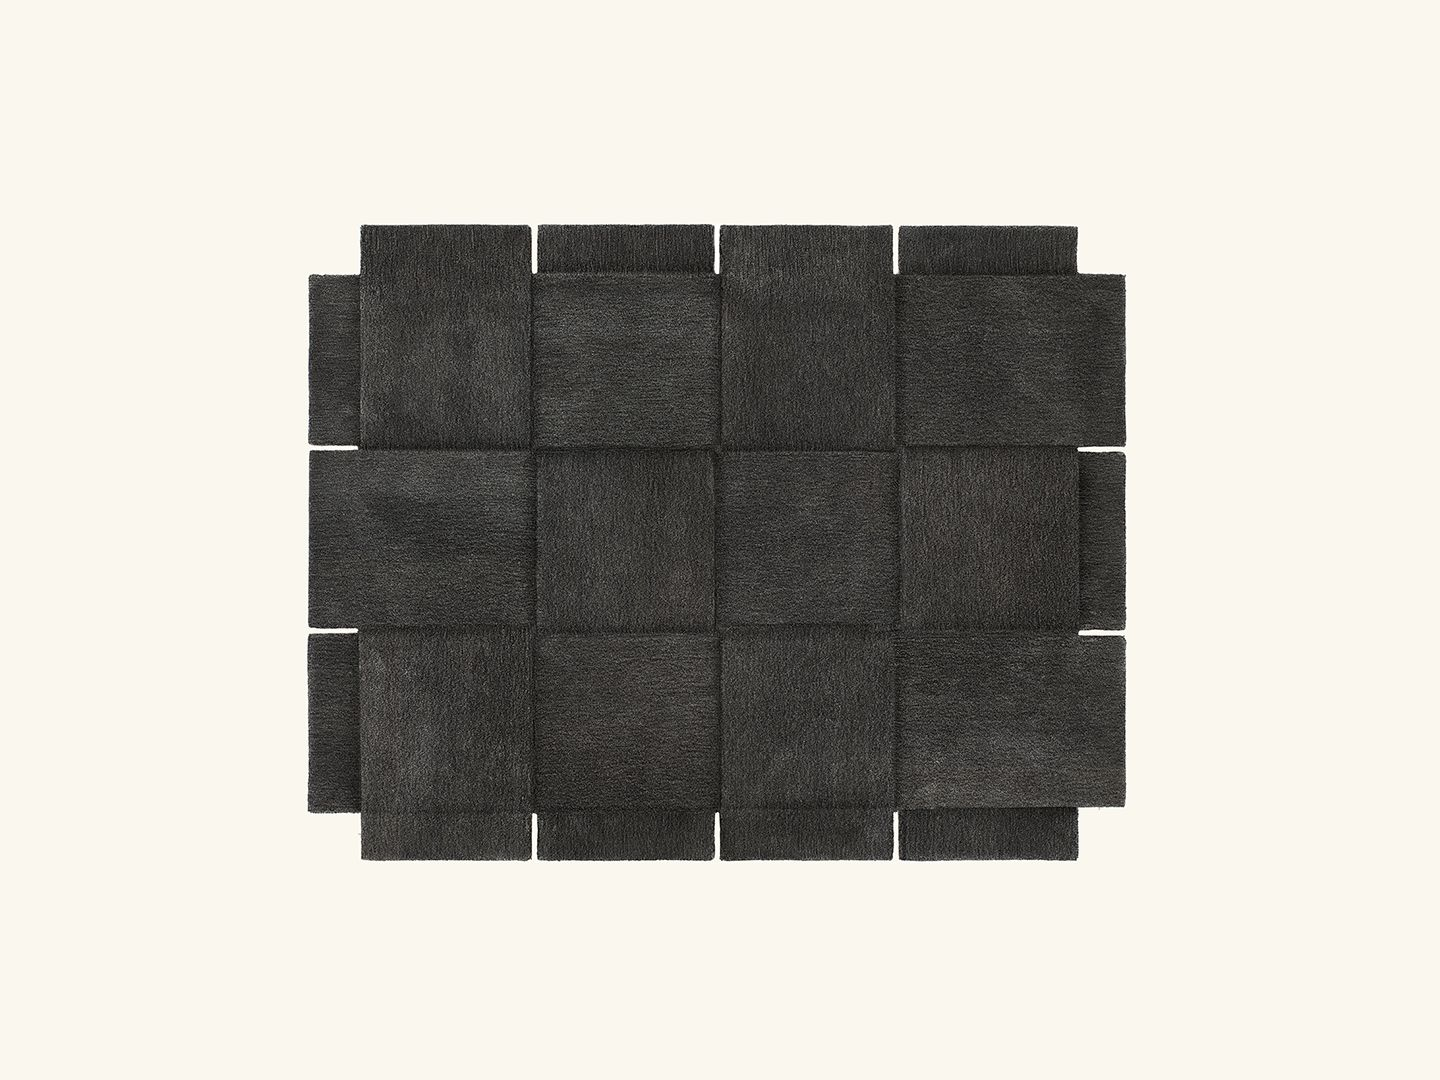 Basket rug Dark grey 185x240cm